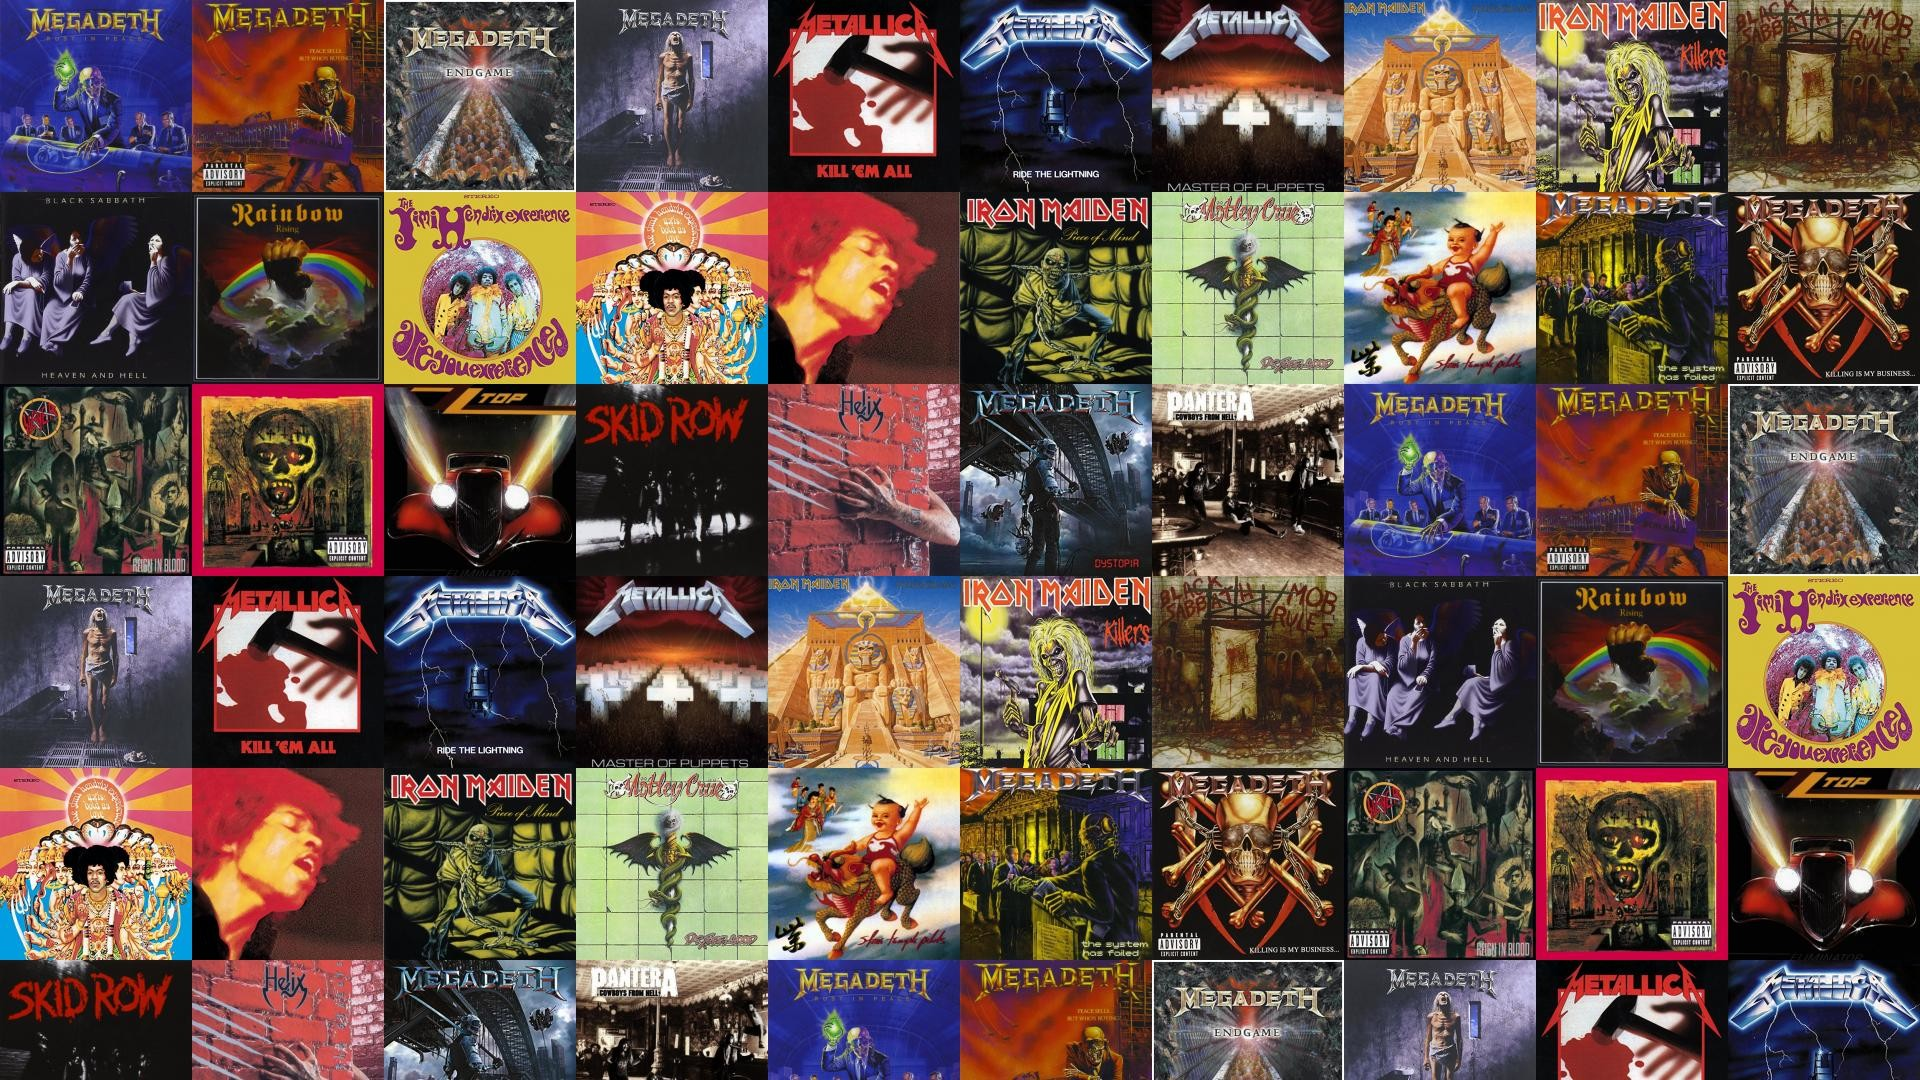 1920x1080 ... Megadeth – Peace Sells, Megadeth – Endgame, Megadeth – Countdown To  Extinction, Metallica – Kill Em All, Metallica – Ride The Lightning ...